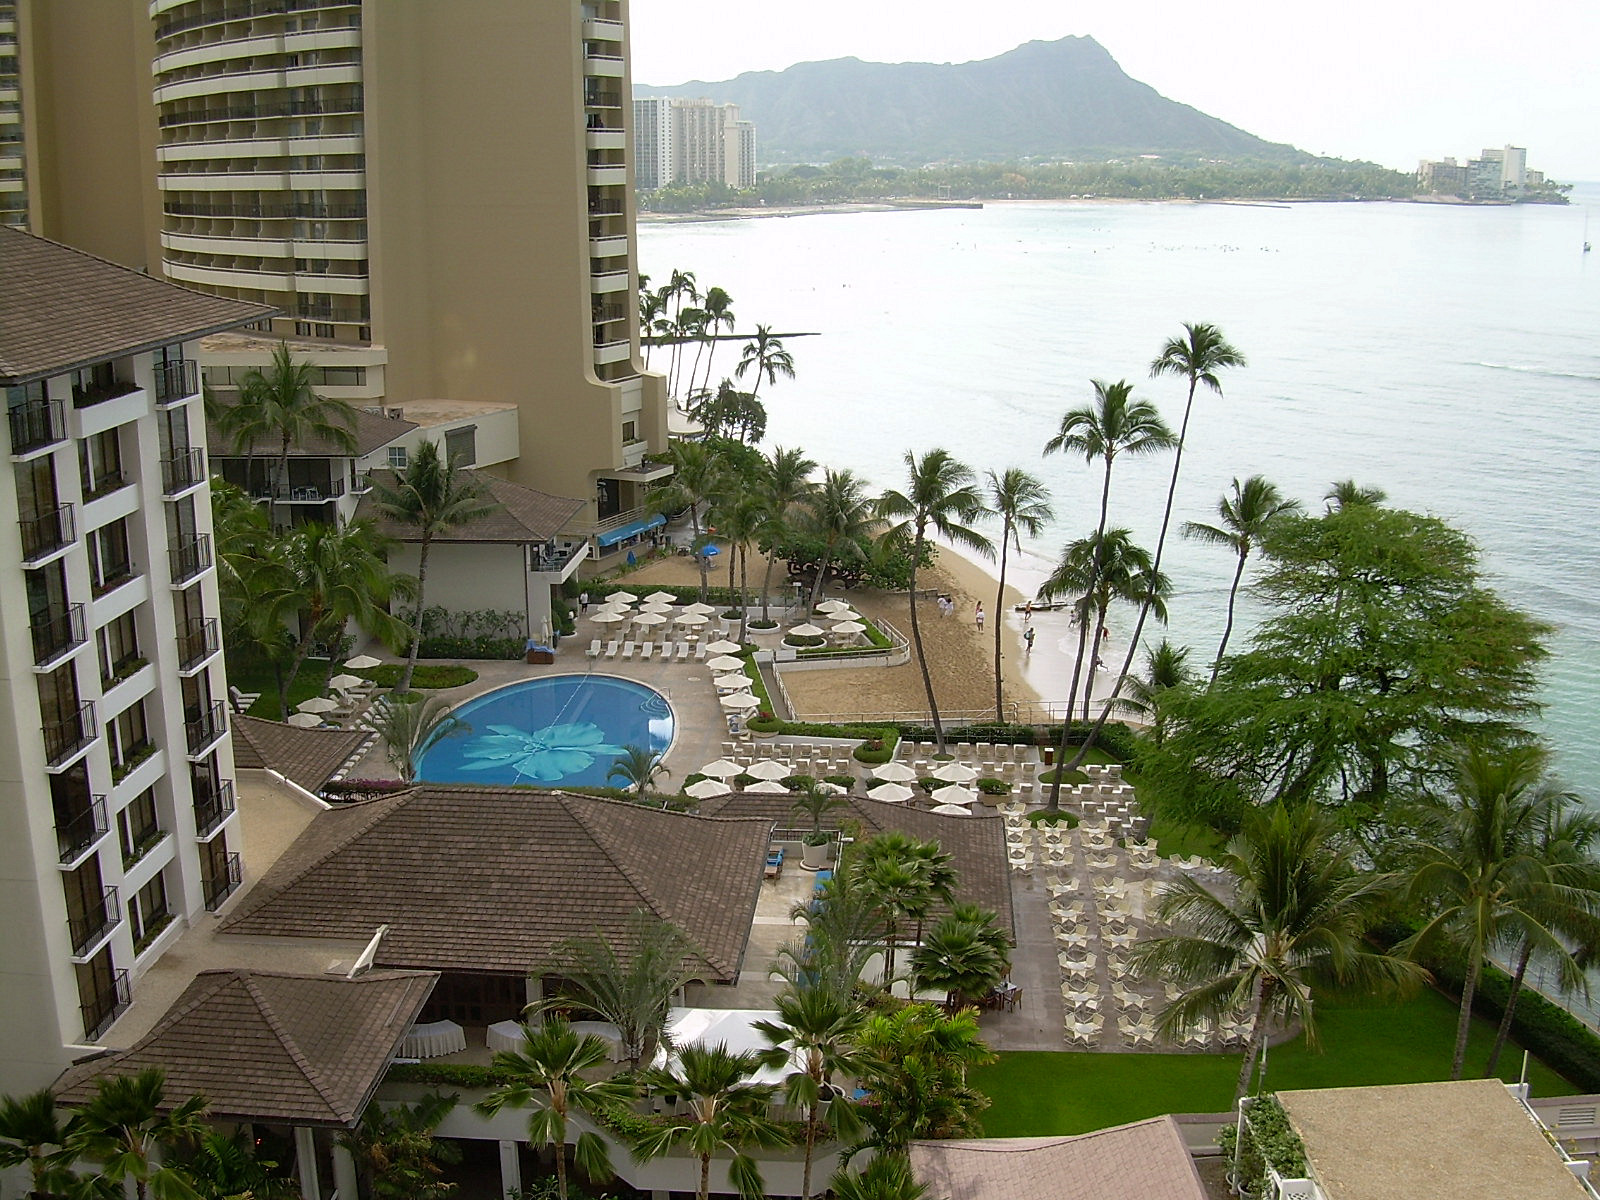 Luxury Hotels In Waikiki Beach Hawaii